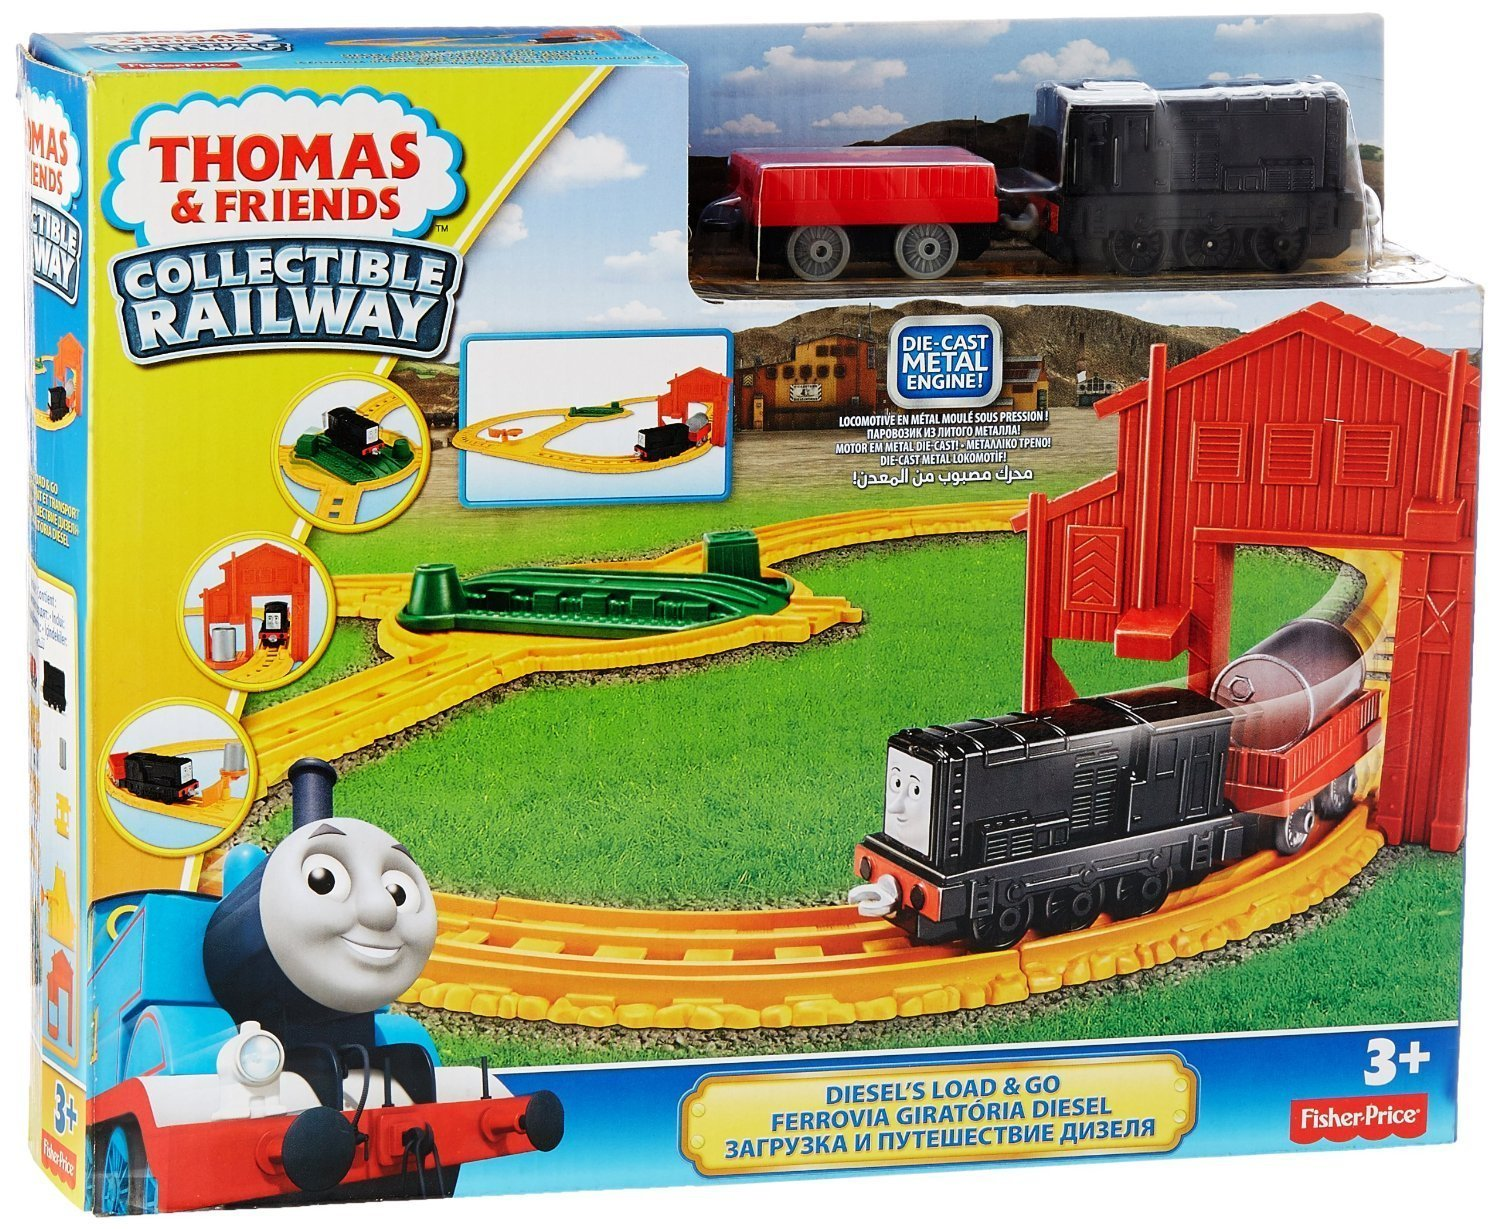 Bad Diesel Set Thomas And Friends Collectible Railway Diesel 39s Load And